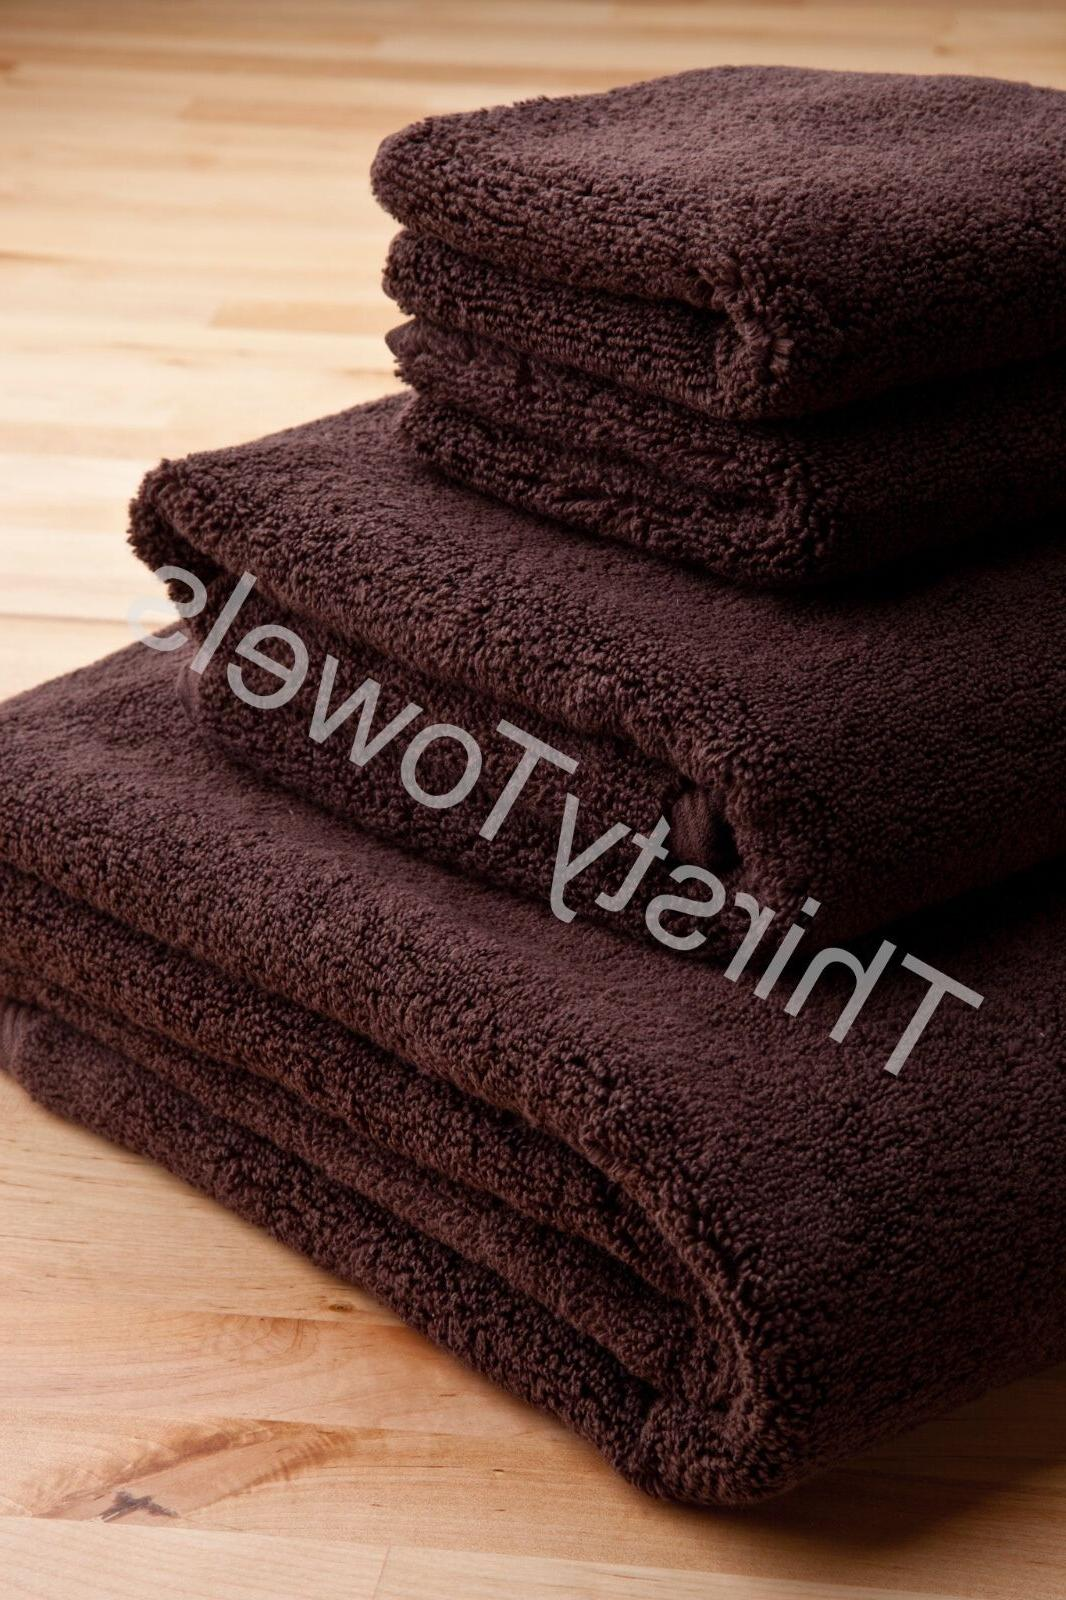 4-Pc Towels 700 GSM Matching